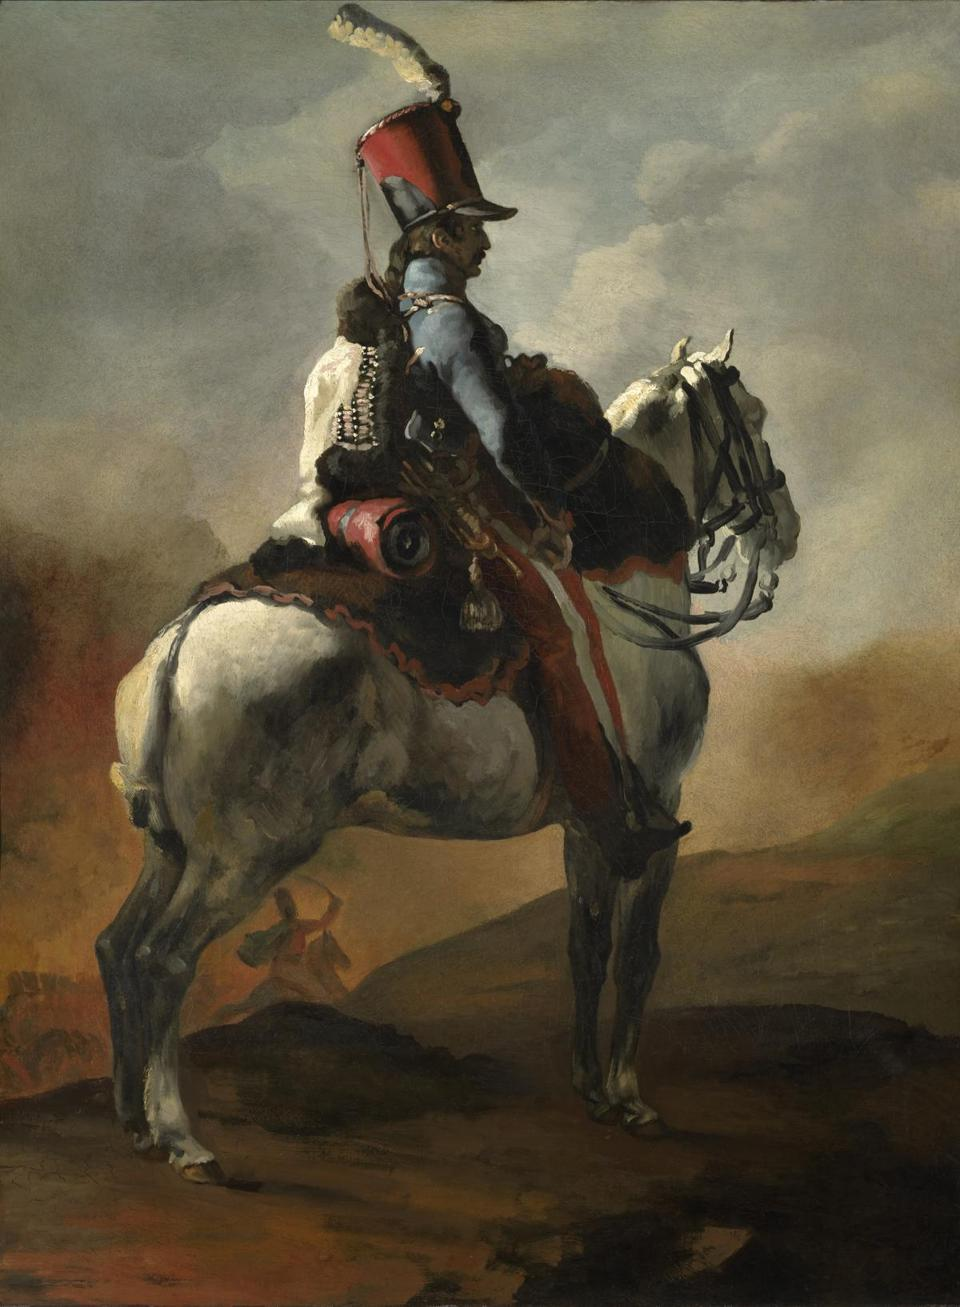 The Clark Art Institute - ThŽodore GŽricault (French, 1791�1824), Trumpeter of the Hussars, c. 1815�20. Oil on canvas 37 13/16 x 28 1/4 in. The Clark, 1955.959 Photo credit: Courtesy of The Clark Art Institute -- 29Clark